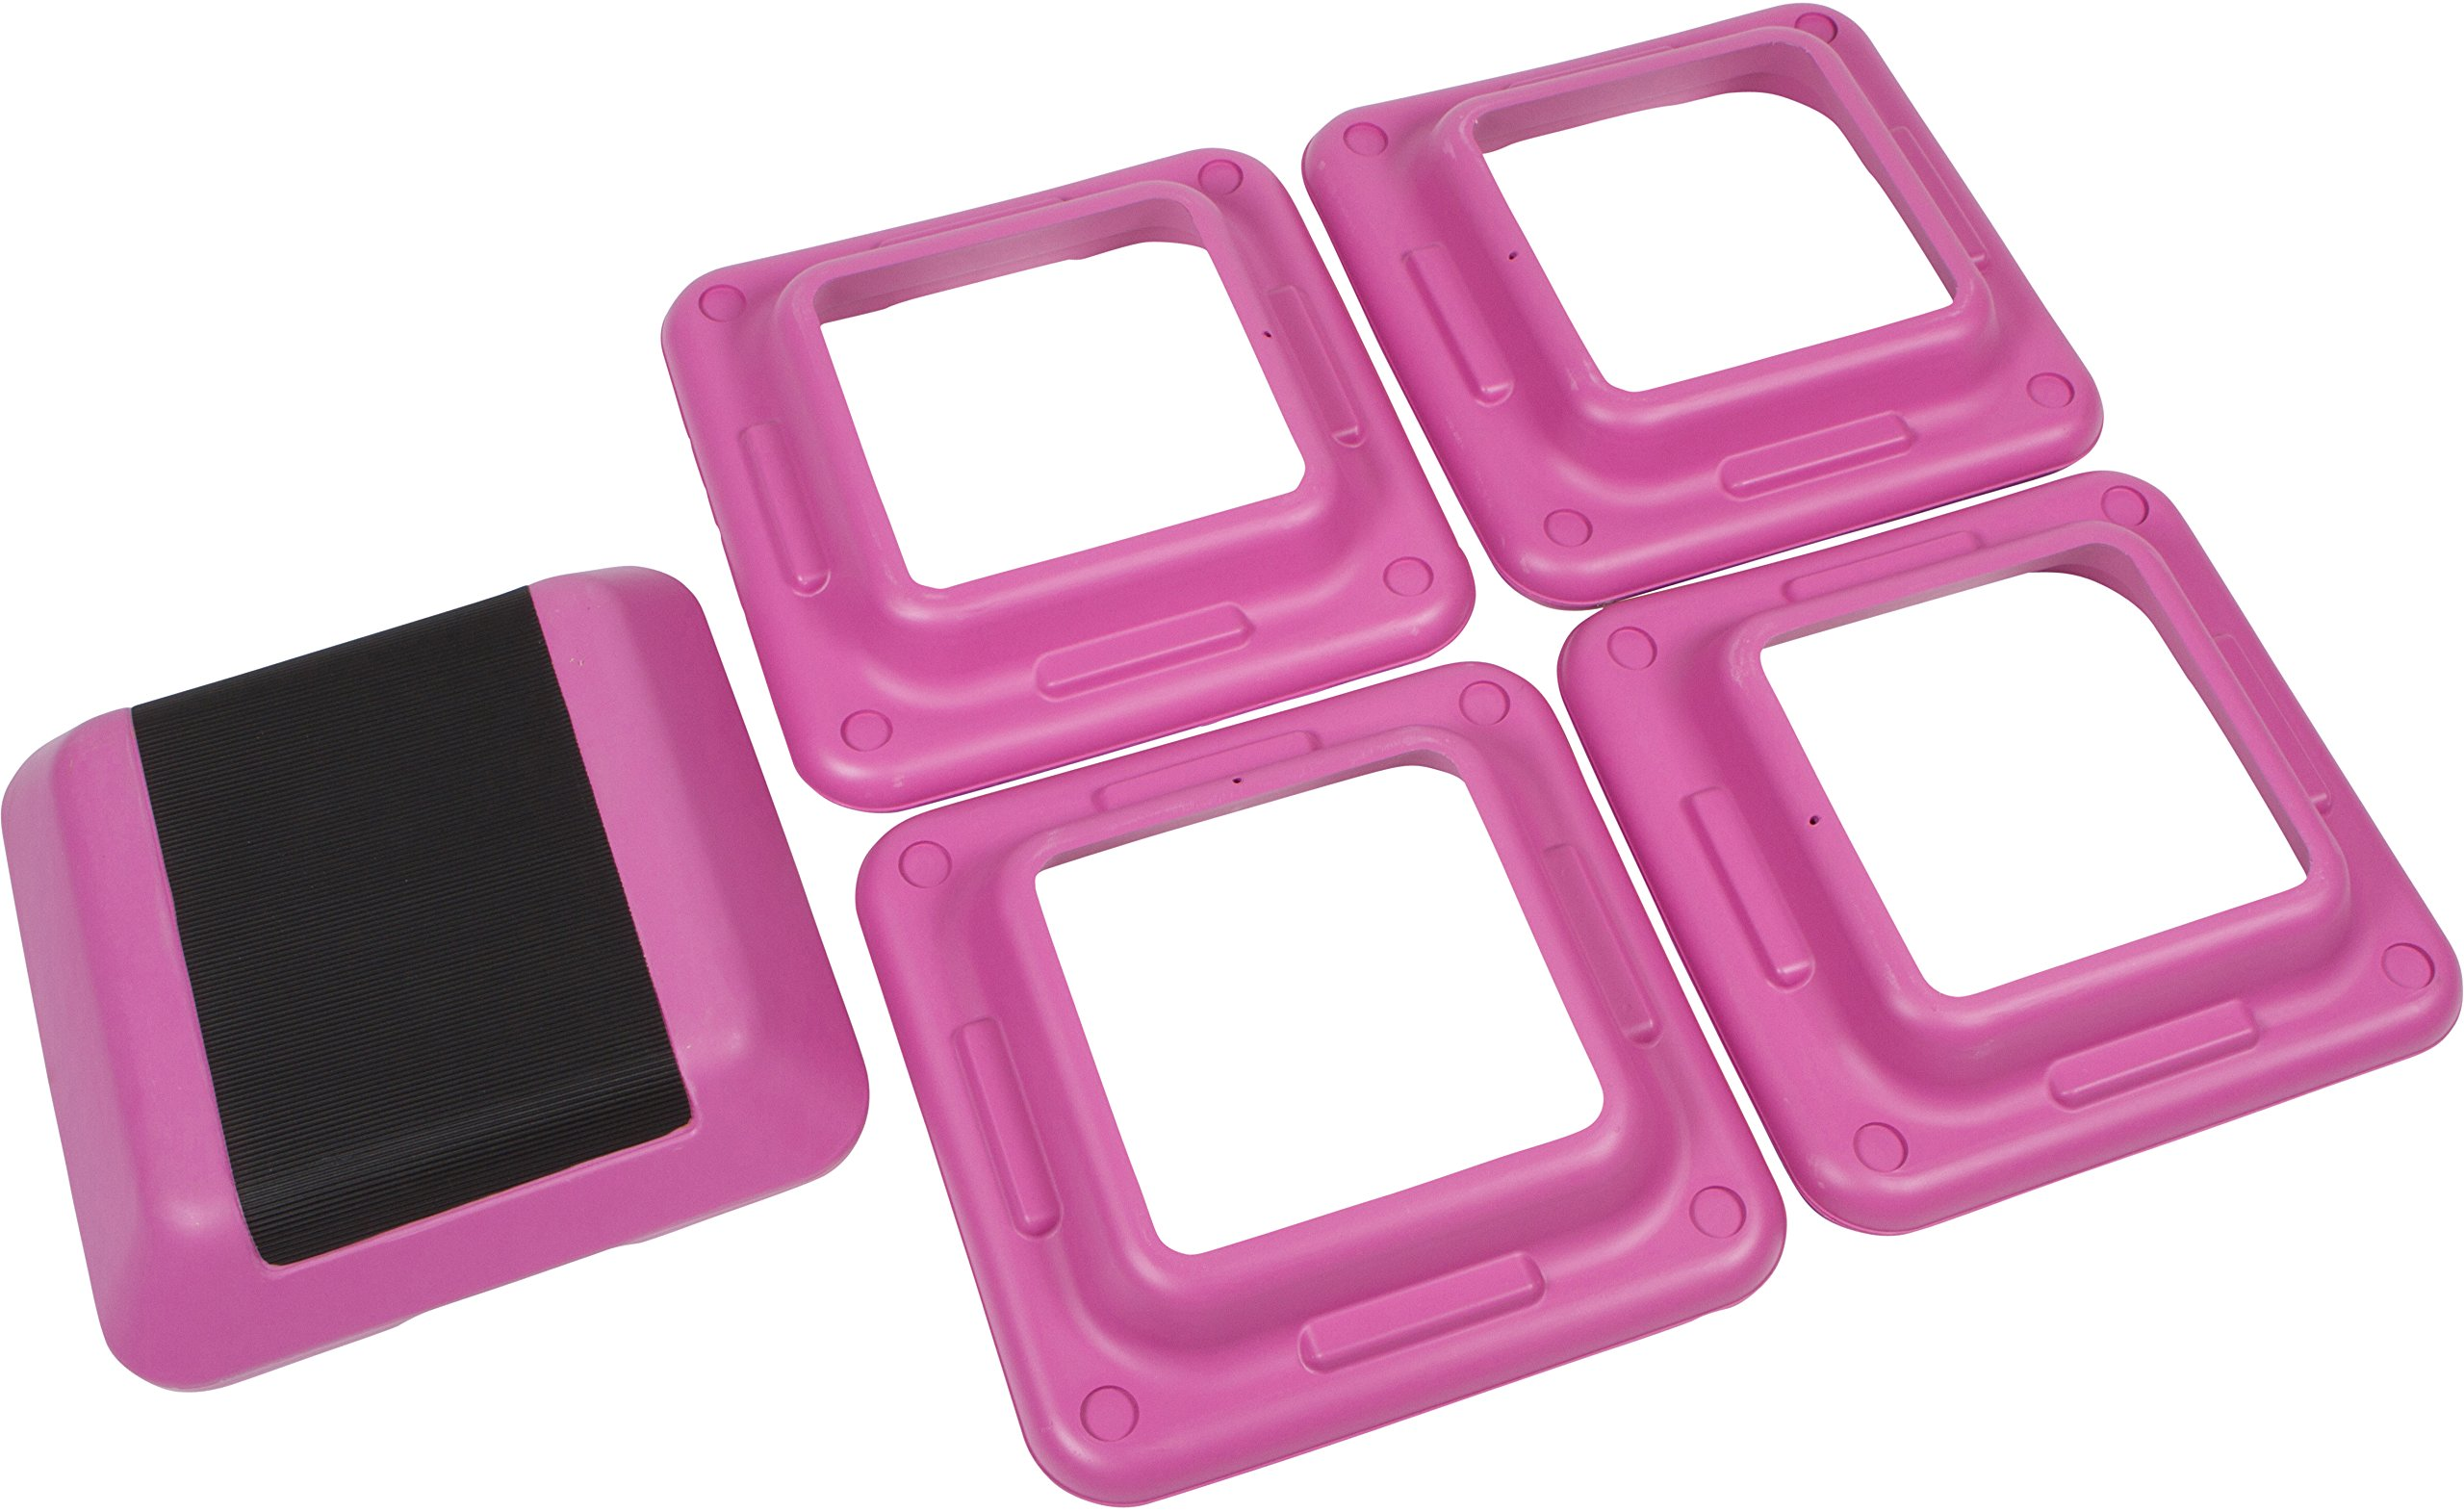 Trademark Innovations High Step Work Out Training Device, Pink, 16 x 16-Inch